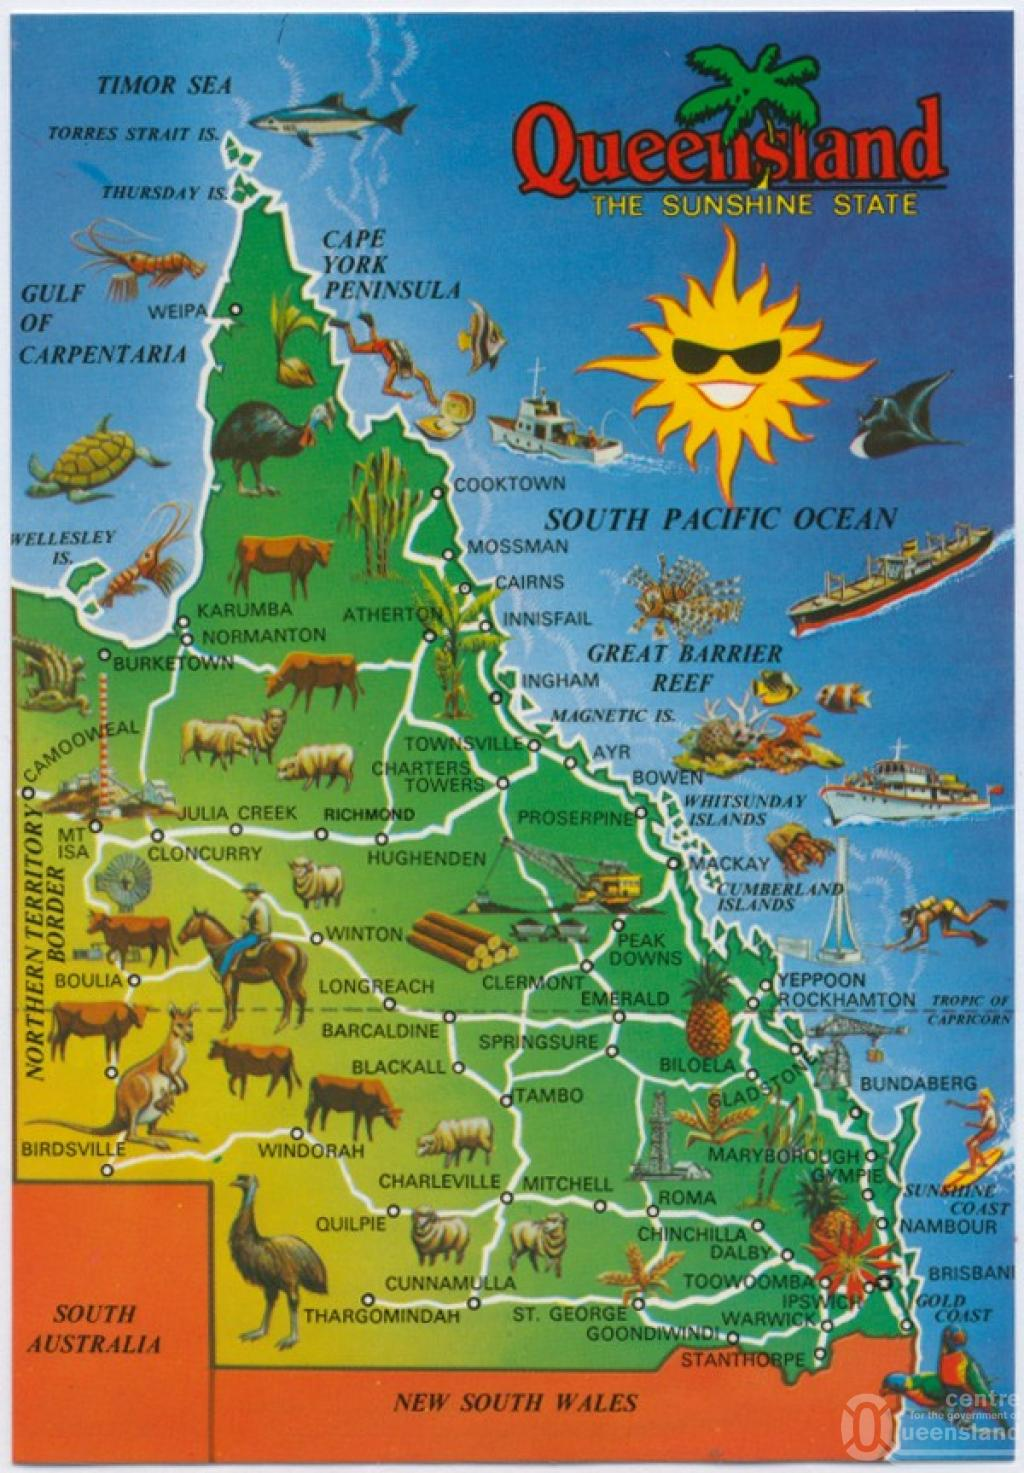 Queensland Tourist Map Queensland Tourist Map Queensland Tourist Map Queensland Tourist Maphtml